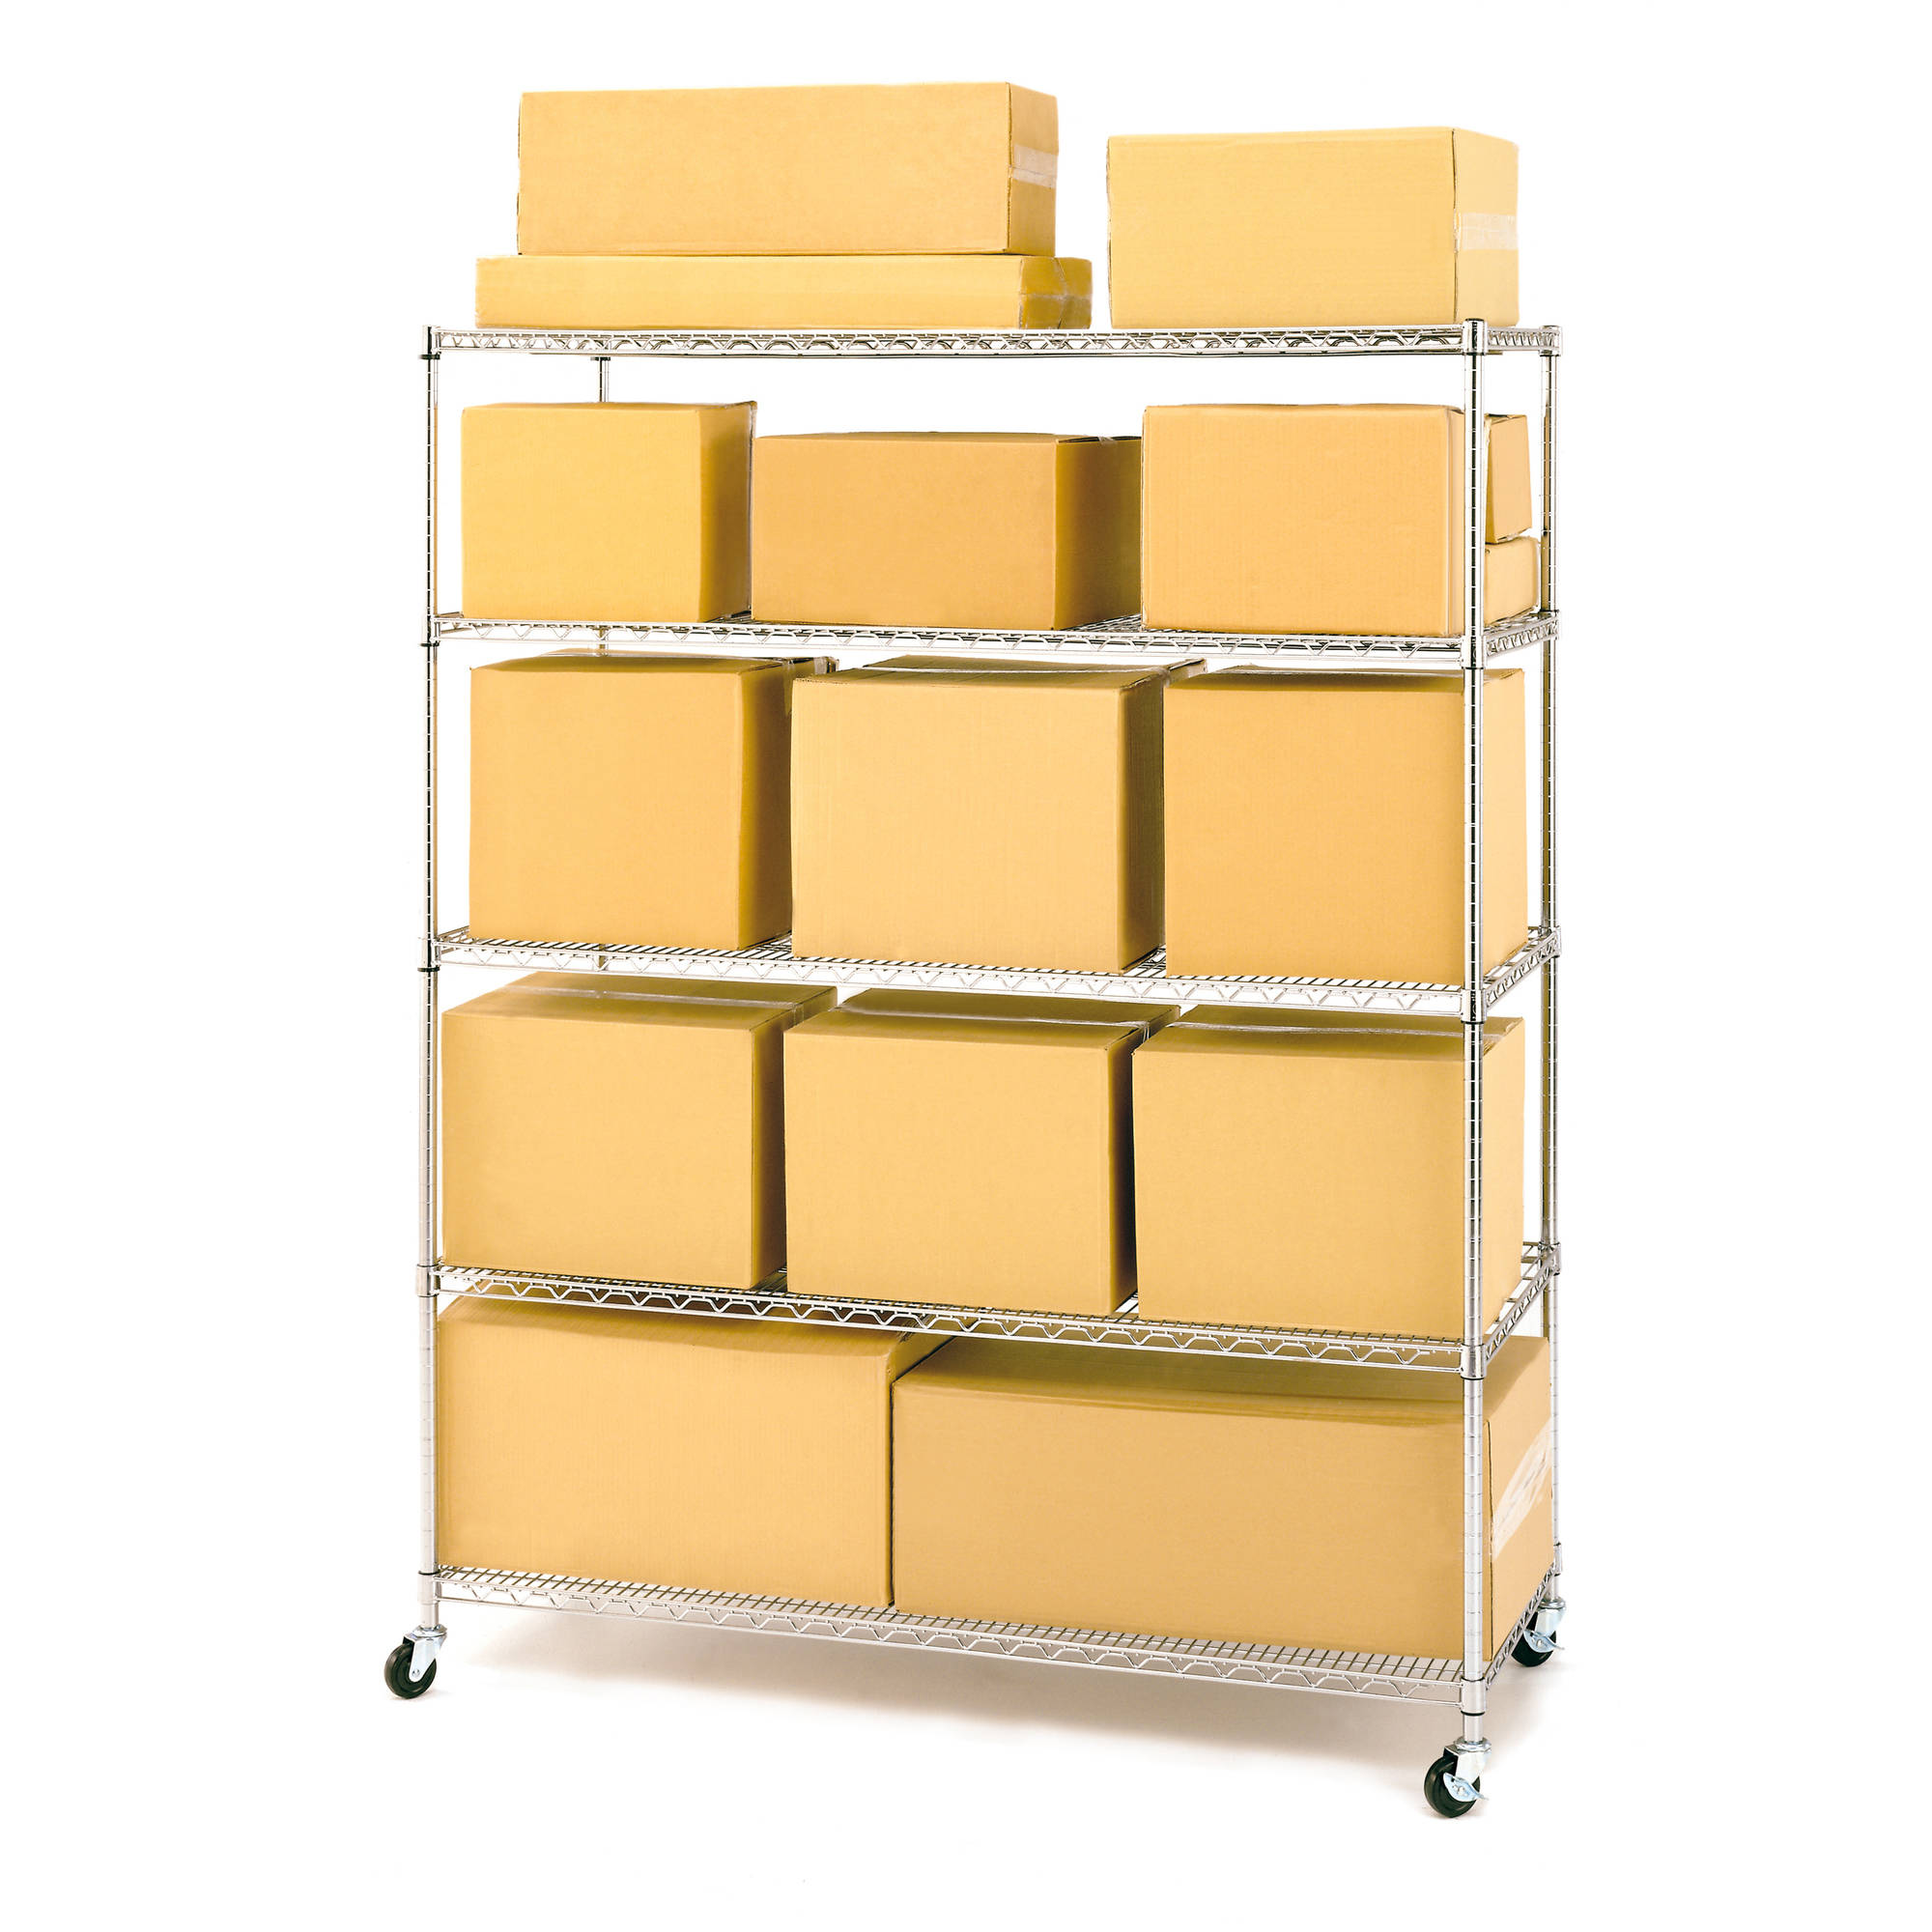 Walmart Shelving | Wall Shelves at Walmart | Wire Shelves Walmart